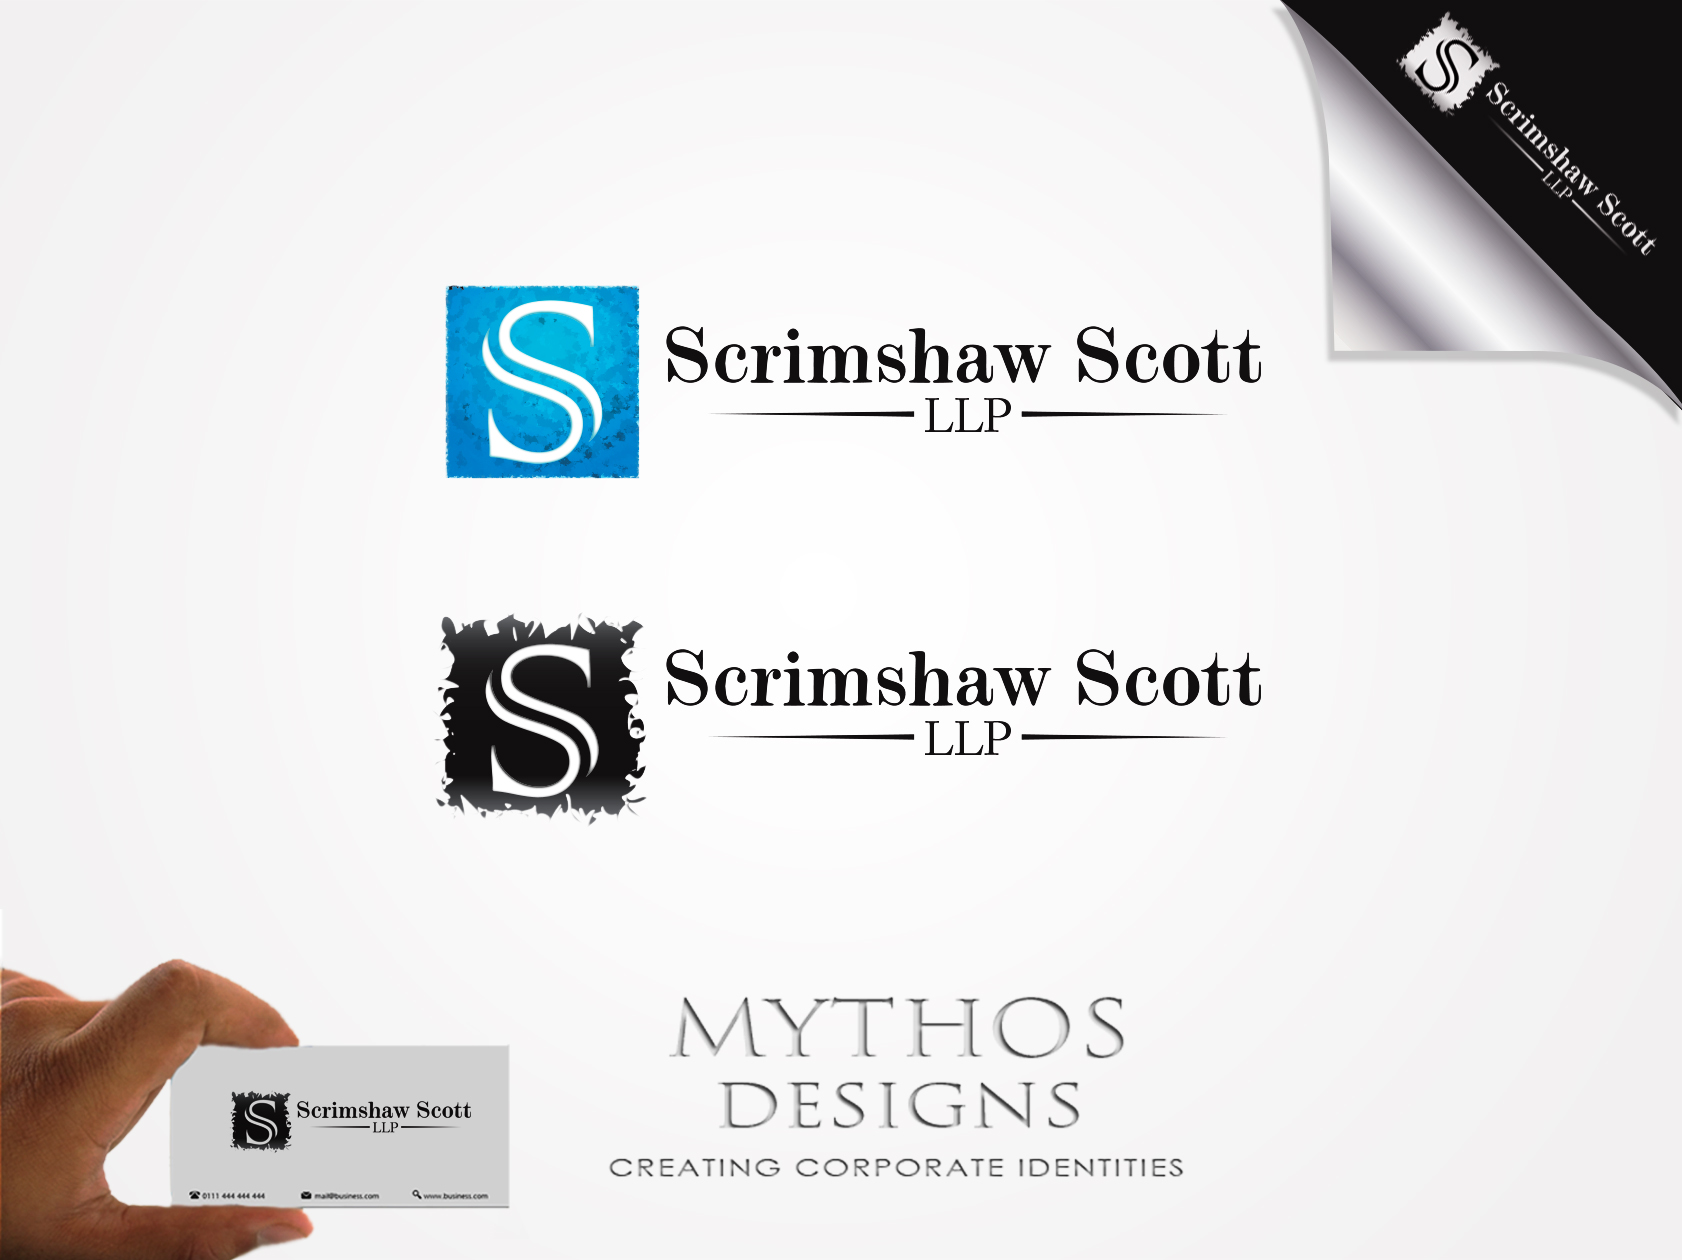 Logo Design by Mythos Designs - Entry No. 54 in the Logo Design Contest Creative Logo Design for Scrimshaw Scott LLP.